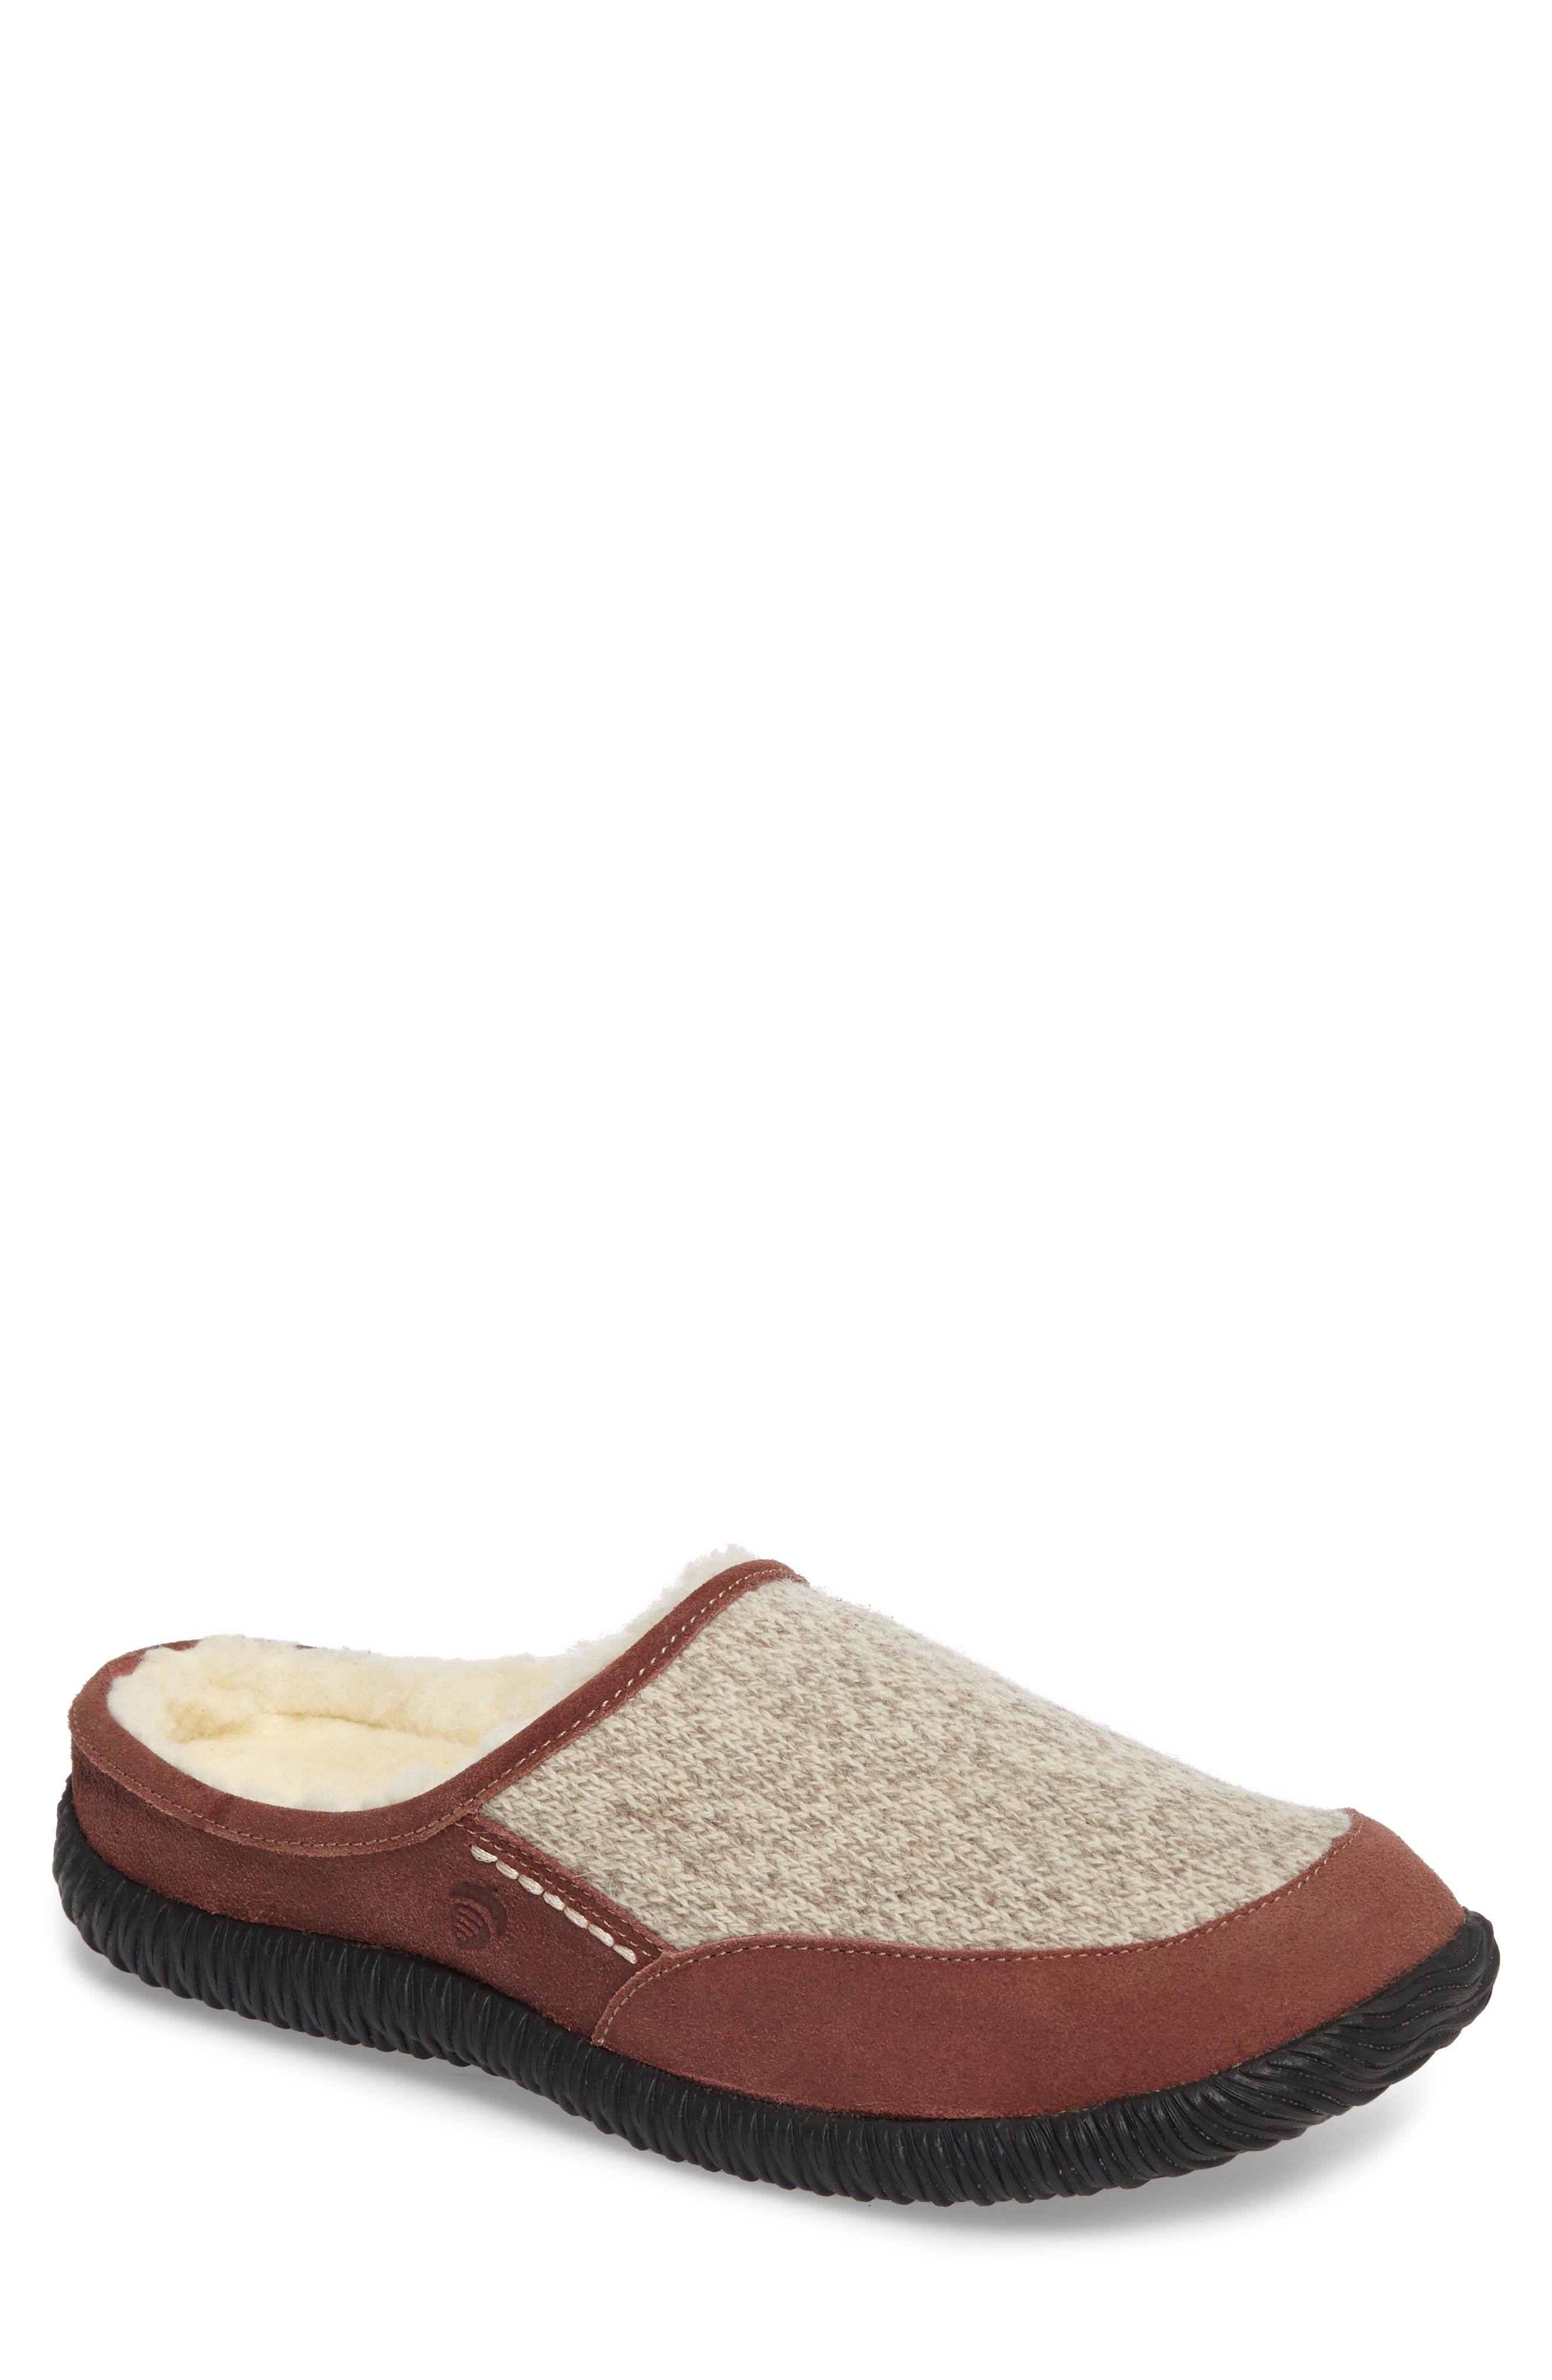 Alternate Image 1 Selected - Acorn 'Rambler' Mule Slipper (Men)